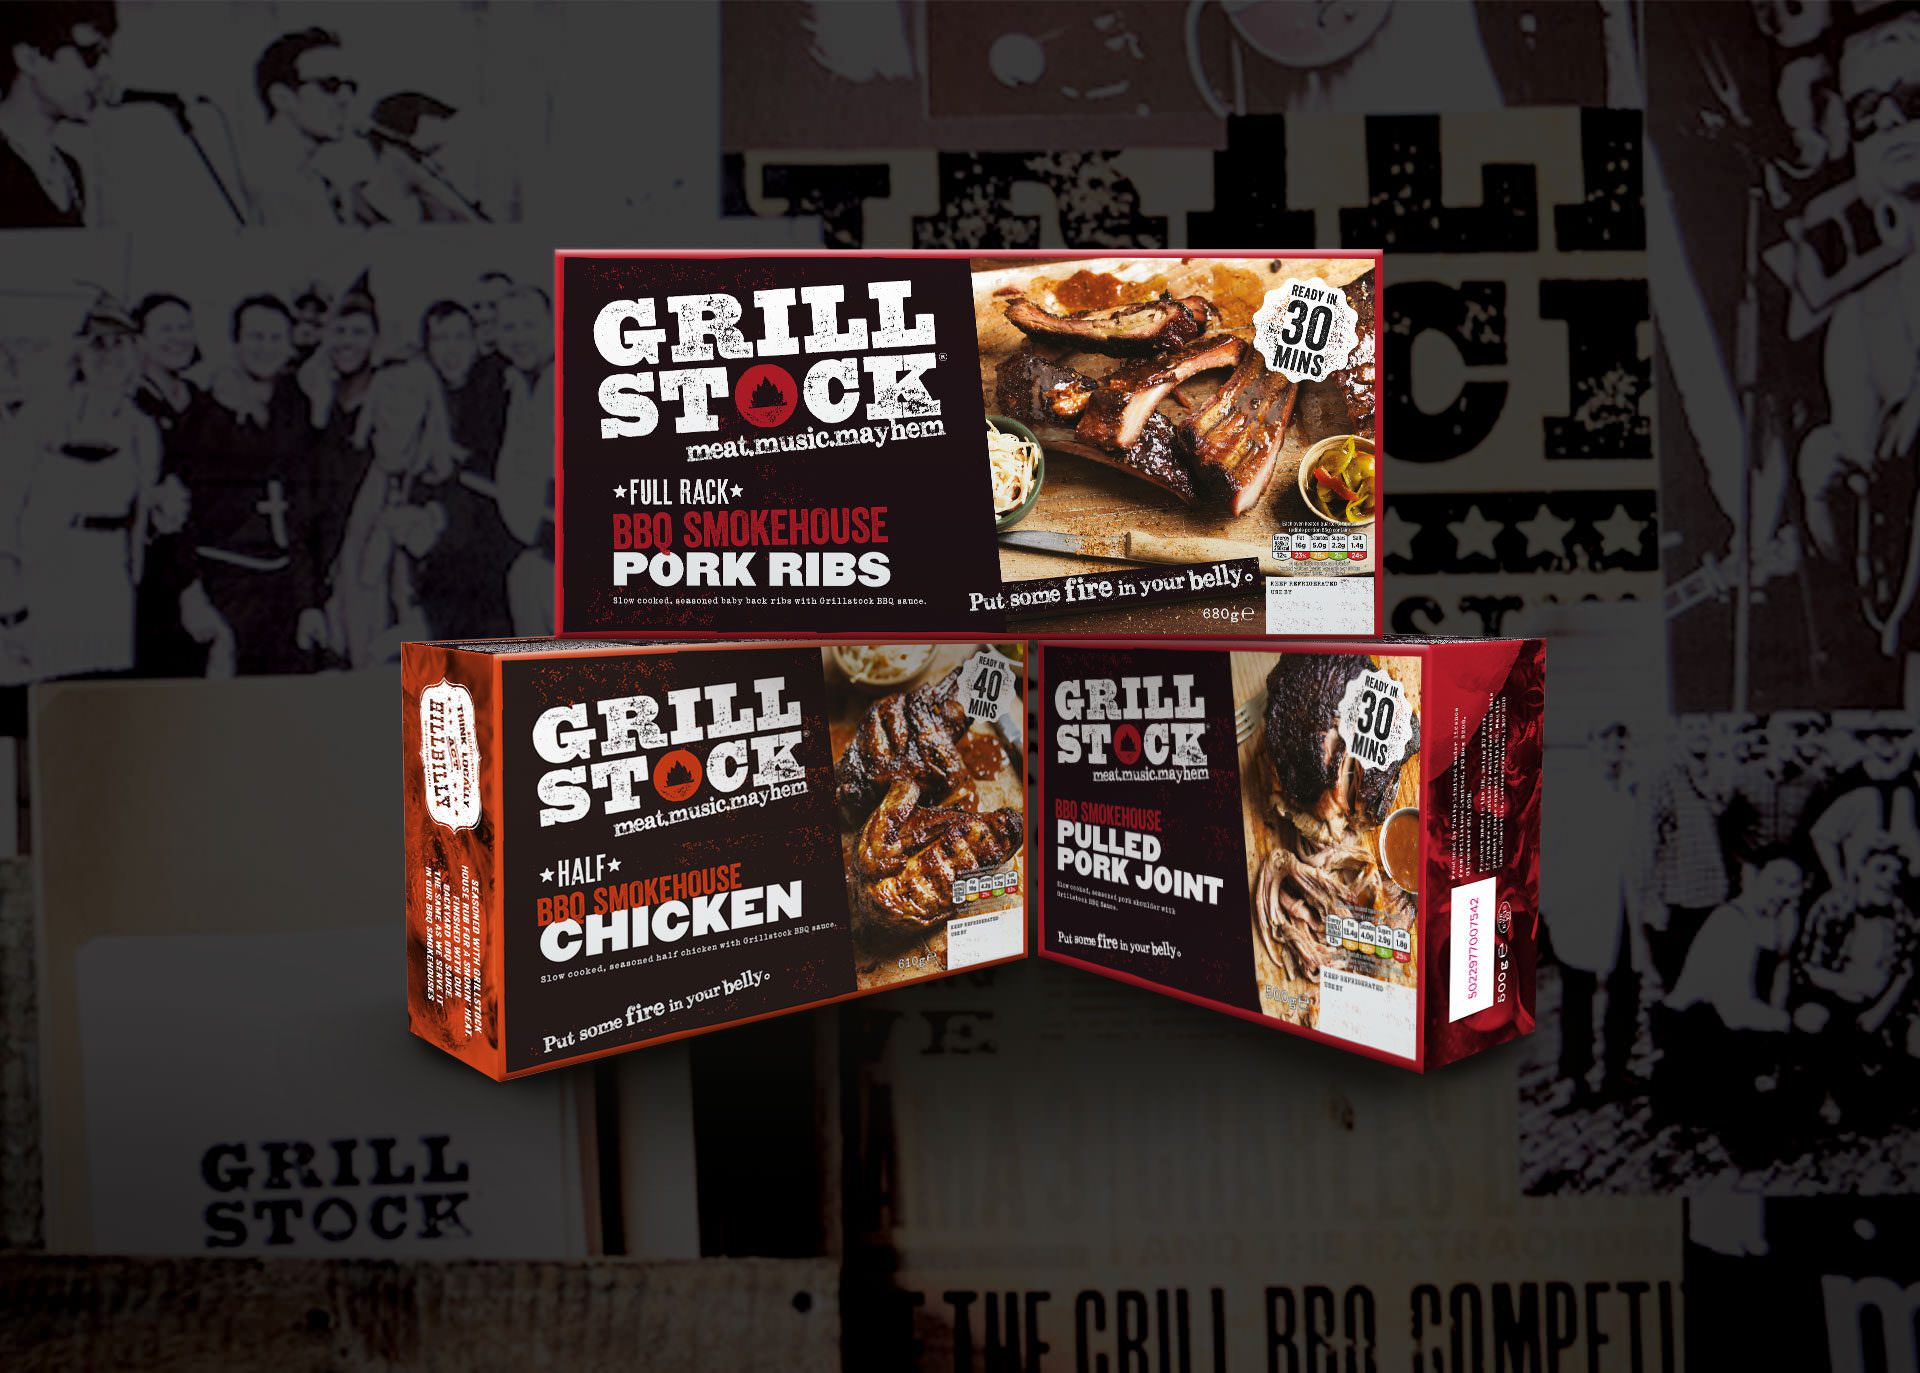 tulip grillstock packaging